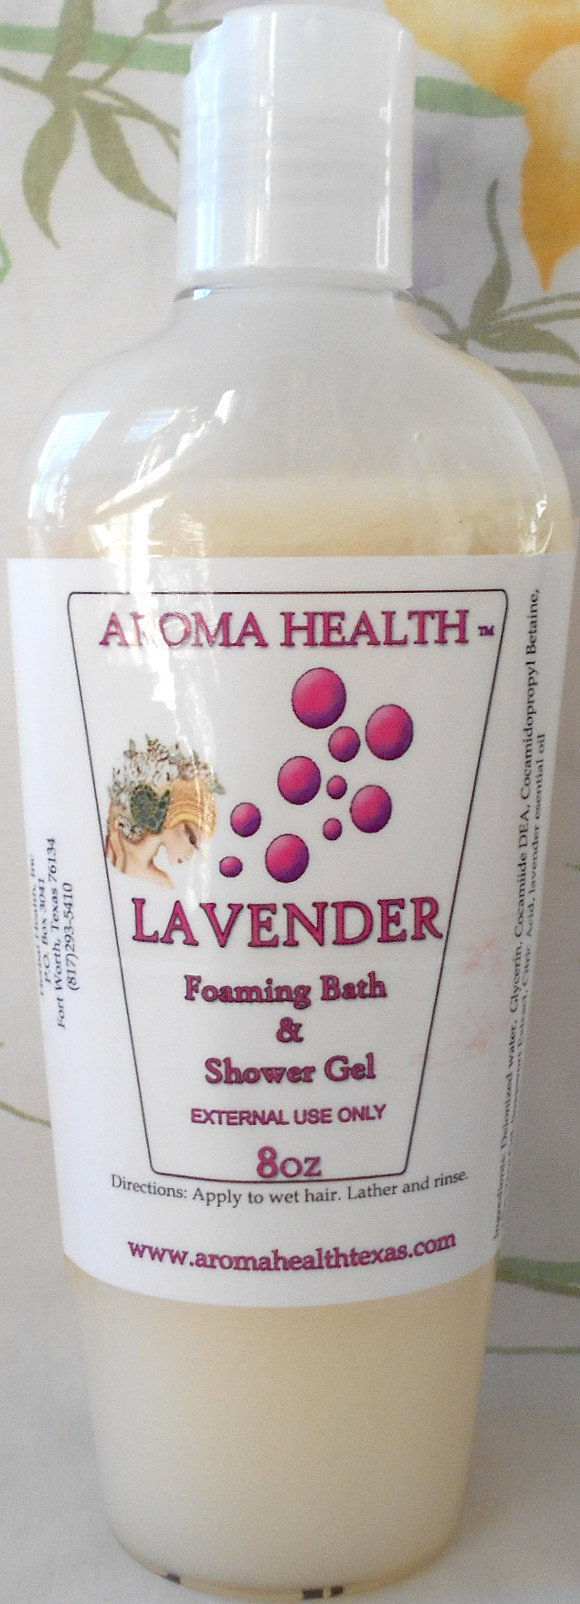 Lavendar Pearlescent Body Wash - Aroma Health Texas